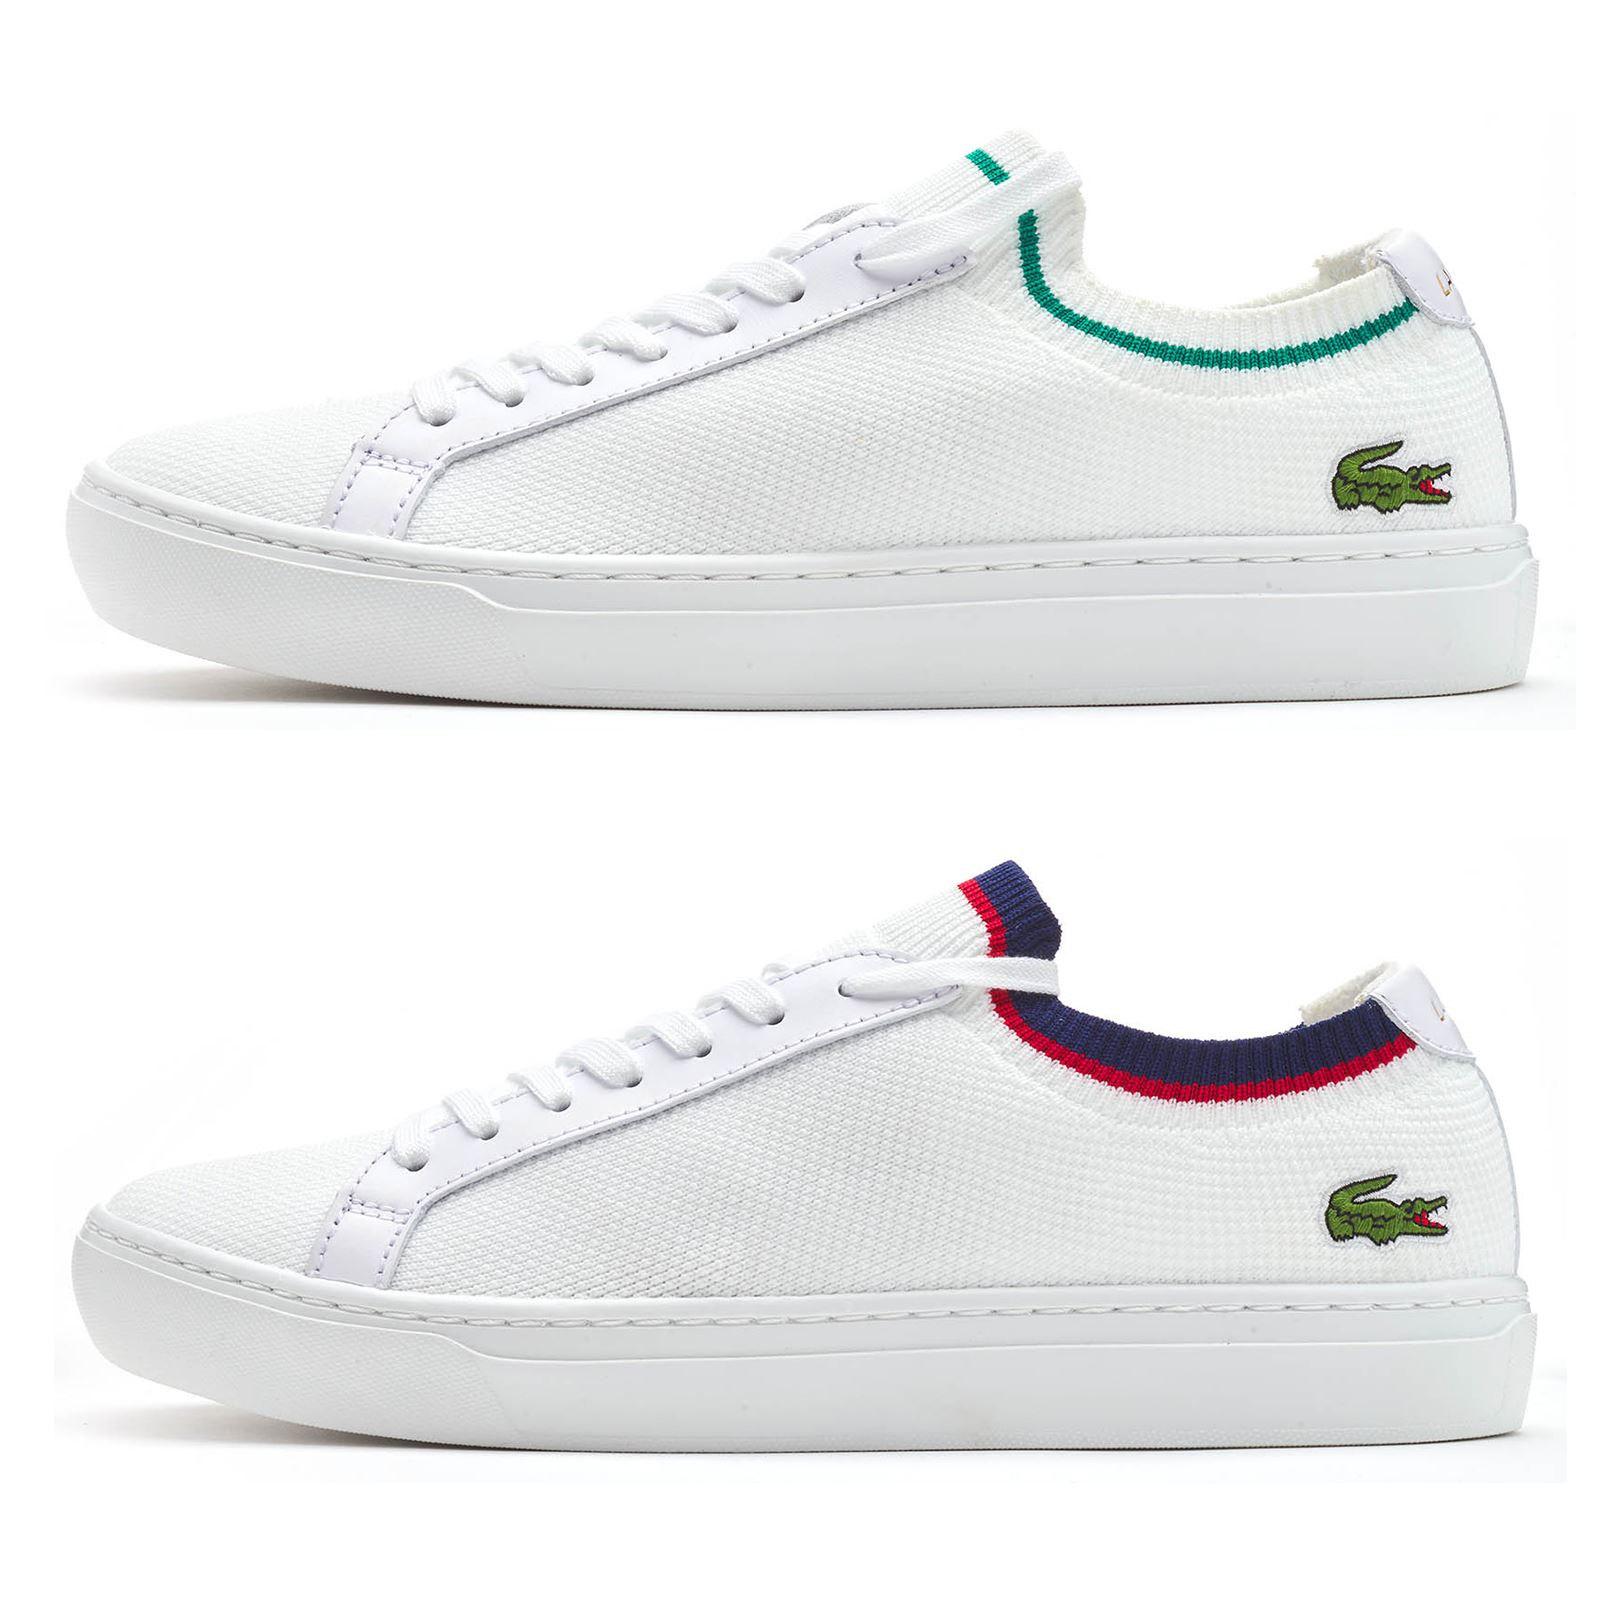 4f62eeb0c359b8 Details about Lacoste La Piquee 119 1 CMA Lace Up Textile Trainers in White    Green   Blue